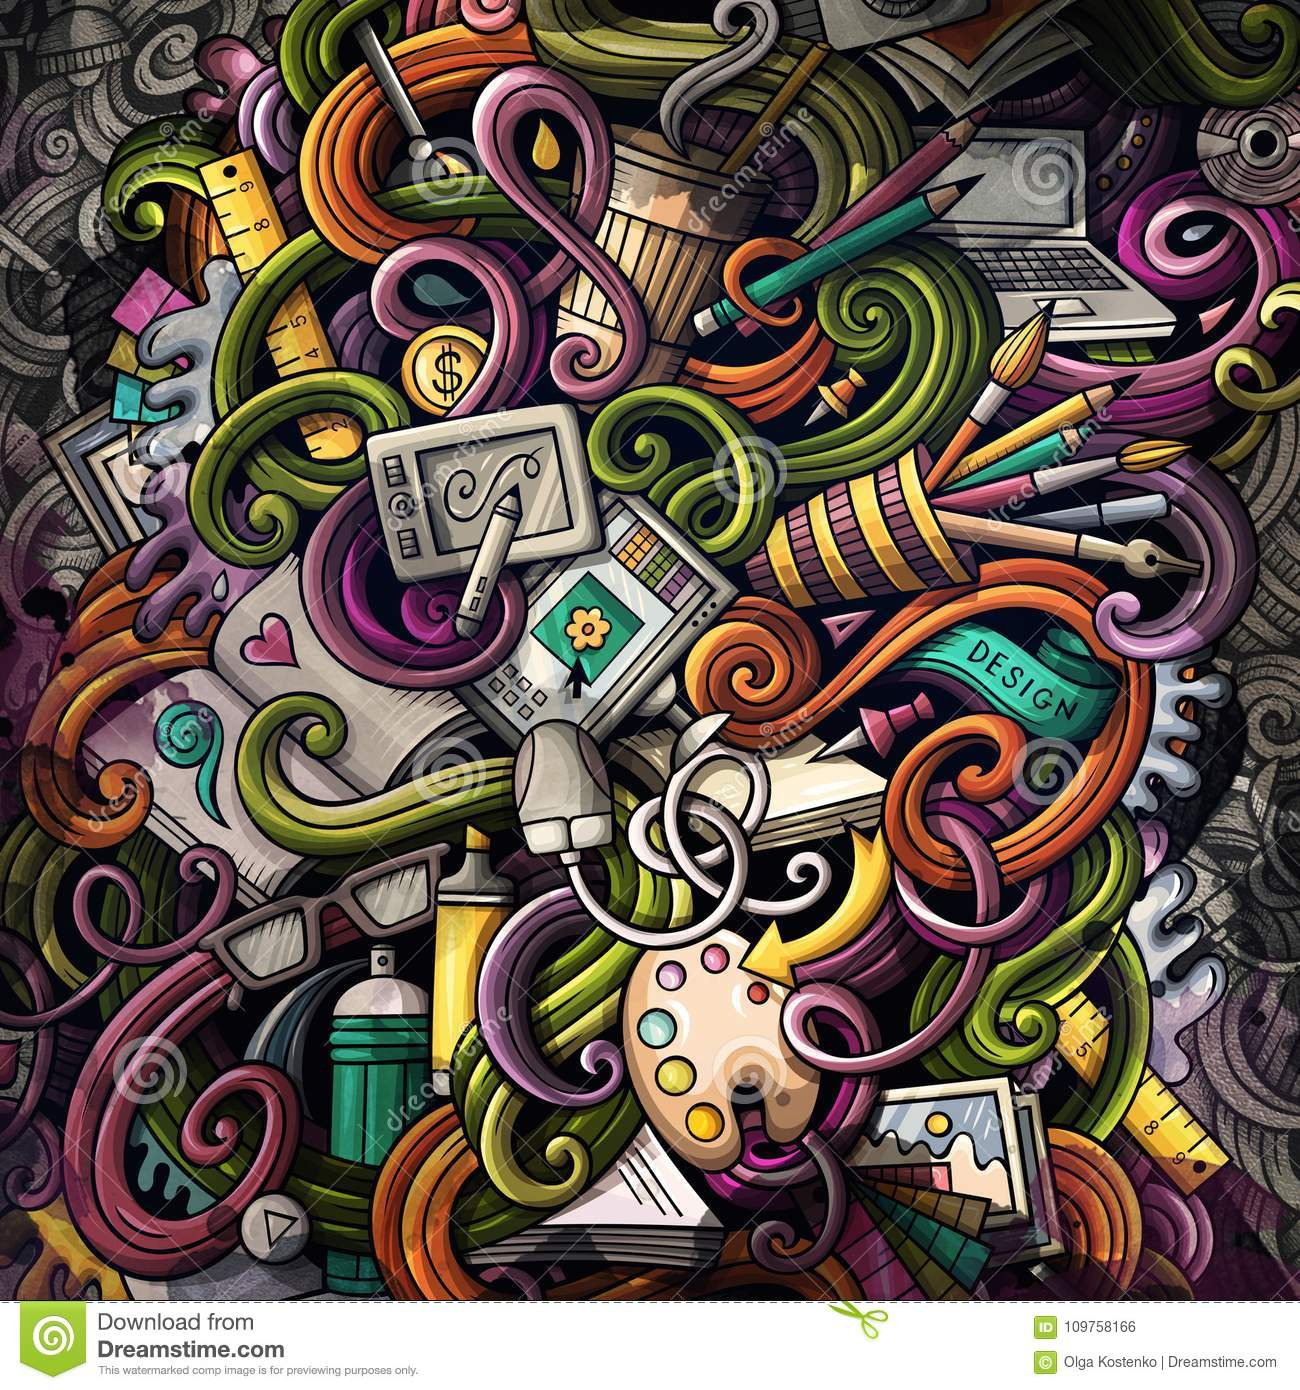 doodles graphic design illustration creative art background stock illustration illustration of computer artistic 109758166 https www dreamstime com doodles graphic design illustration creative art background colorful stylish raster wallpaper image109758166